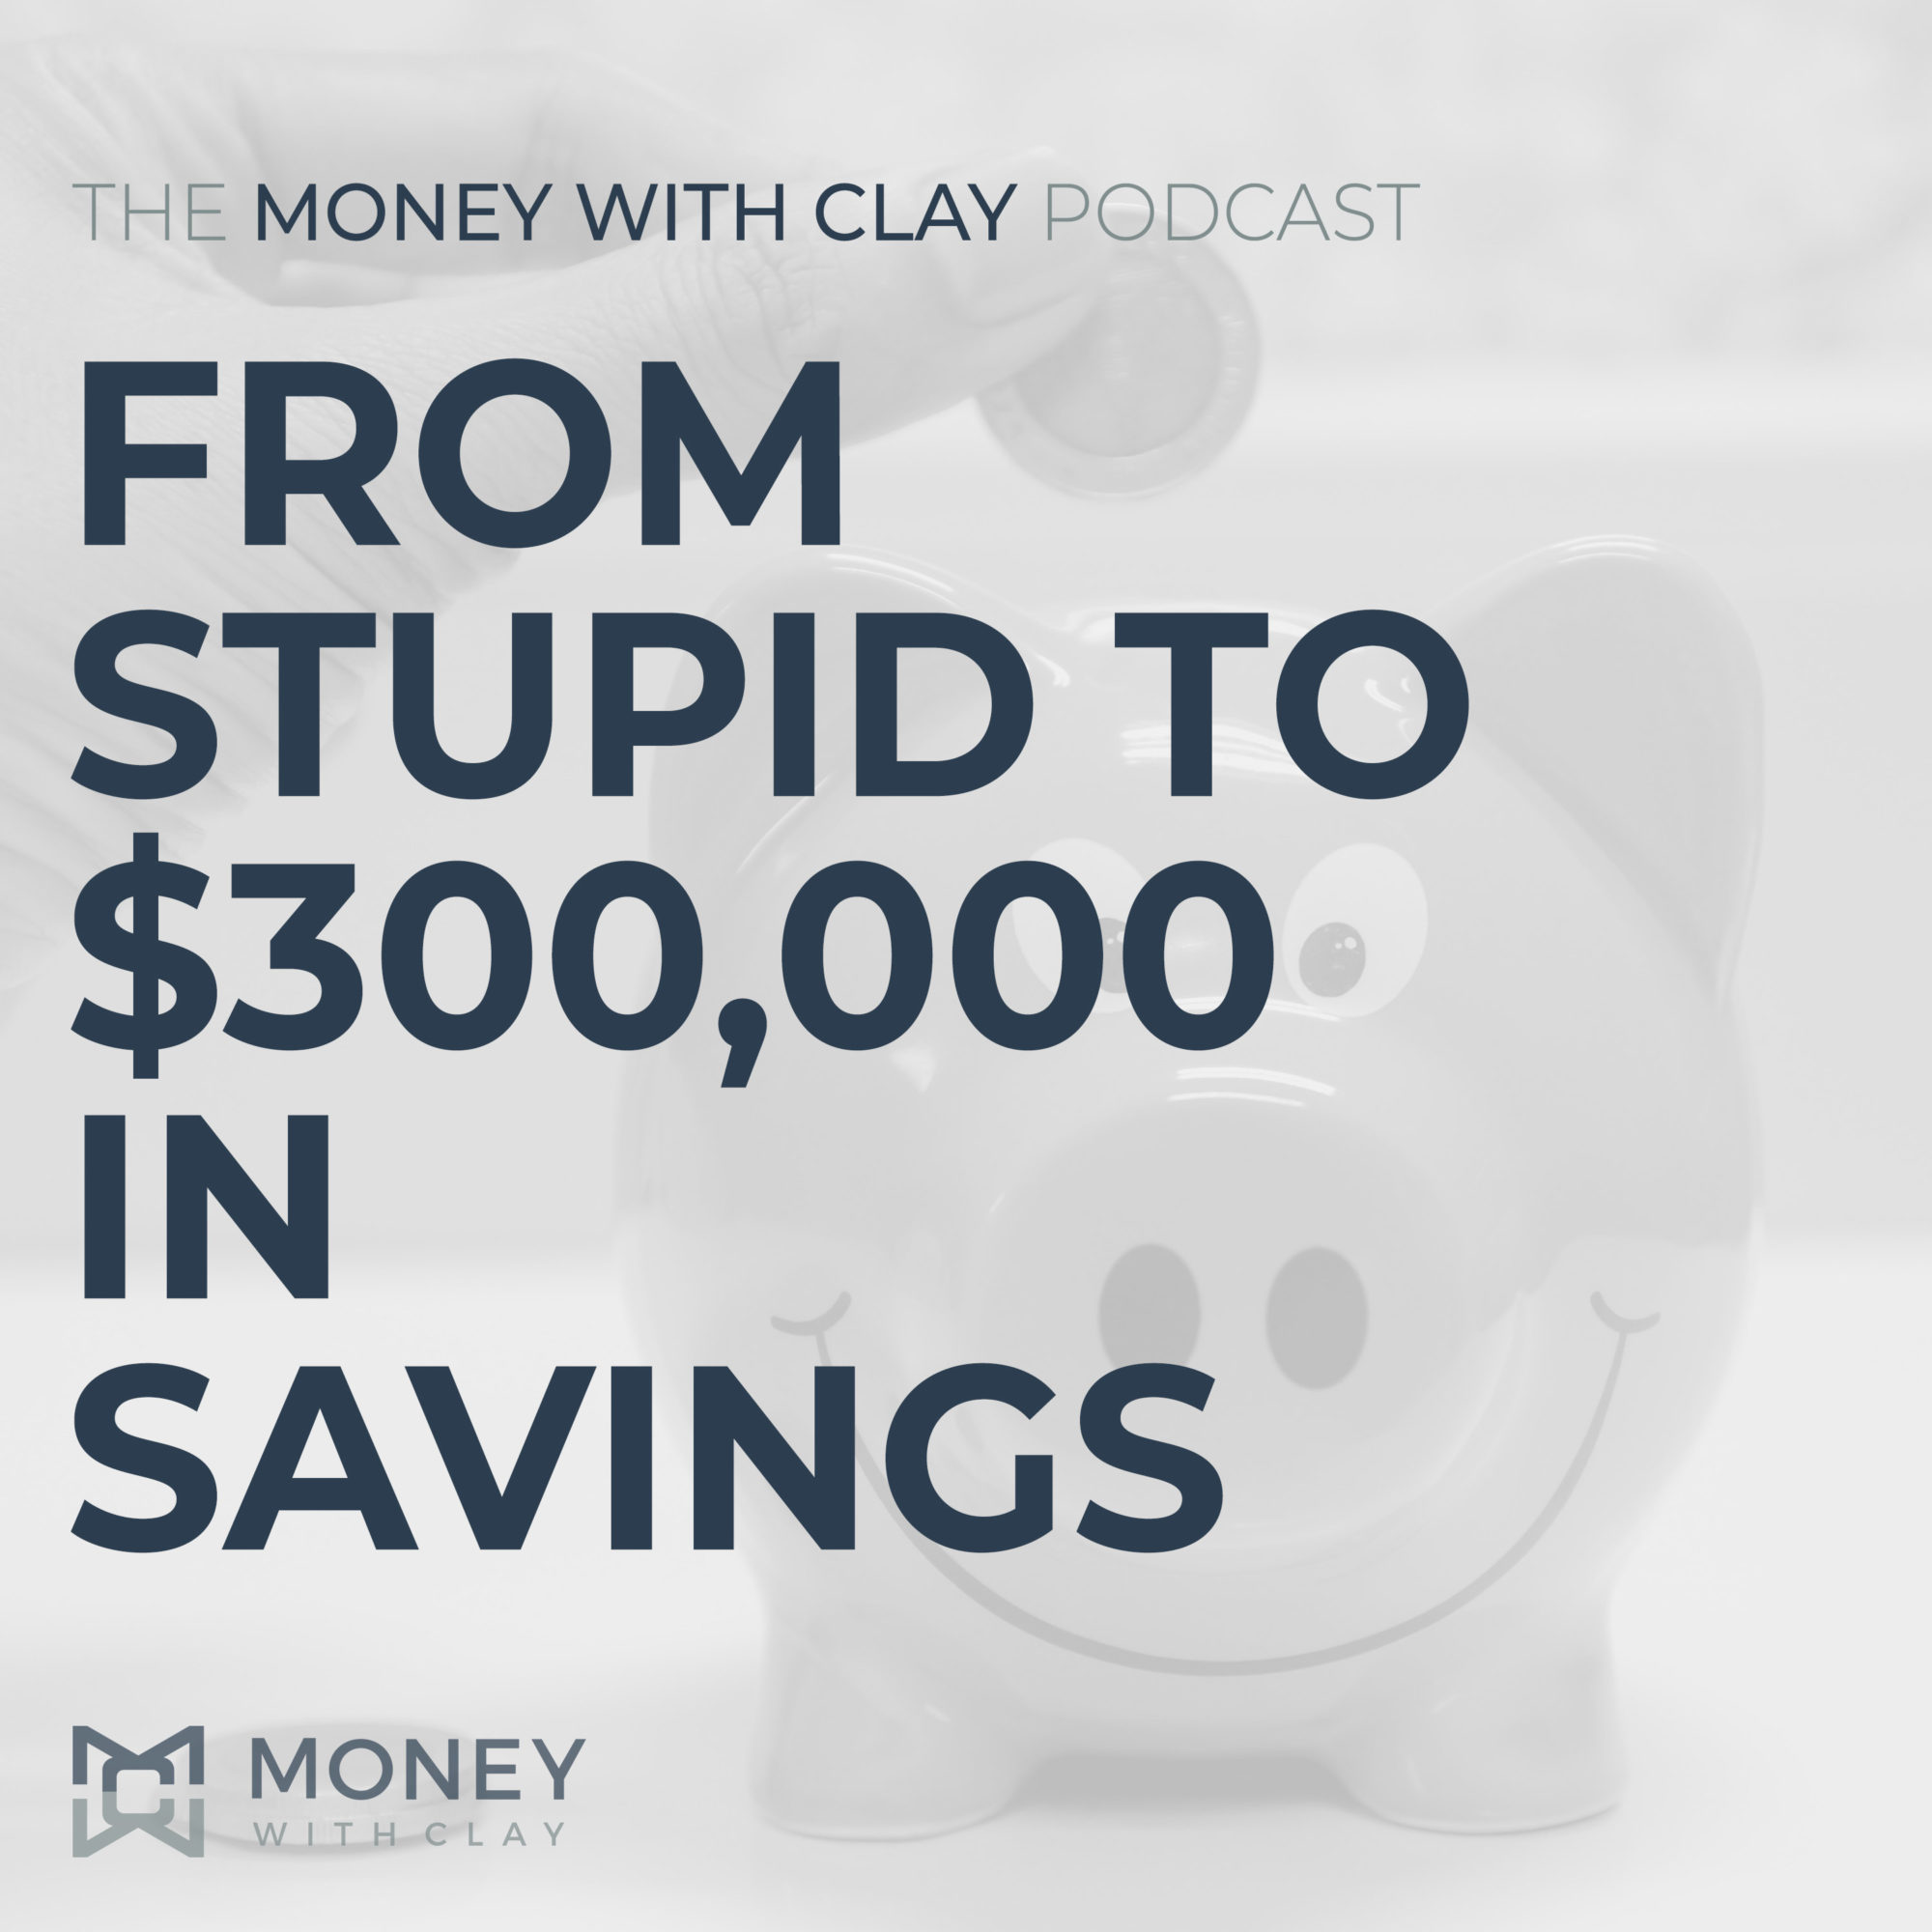 #079 - From Stupid to $300,000 in Savings